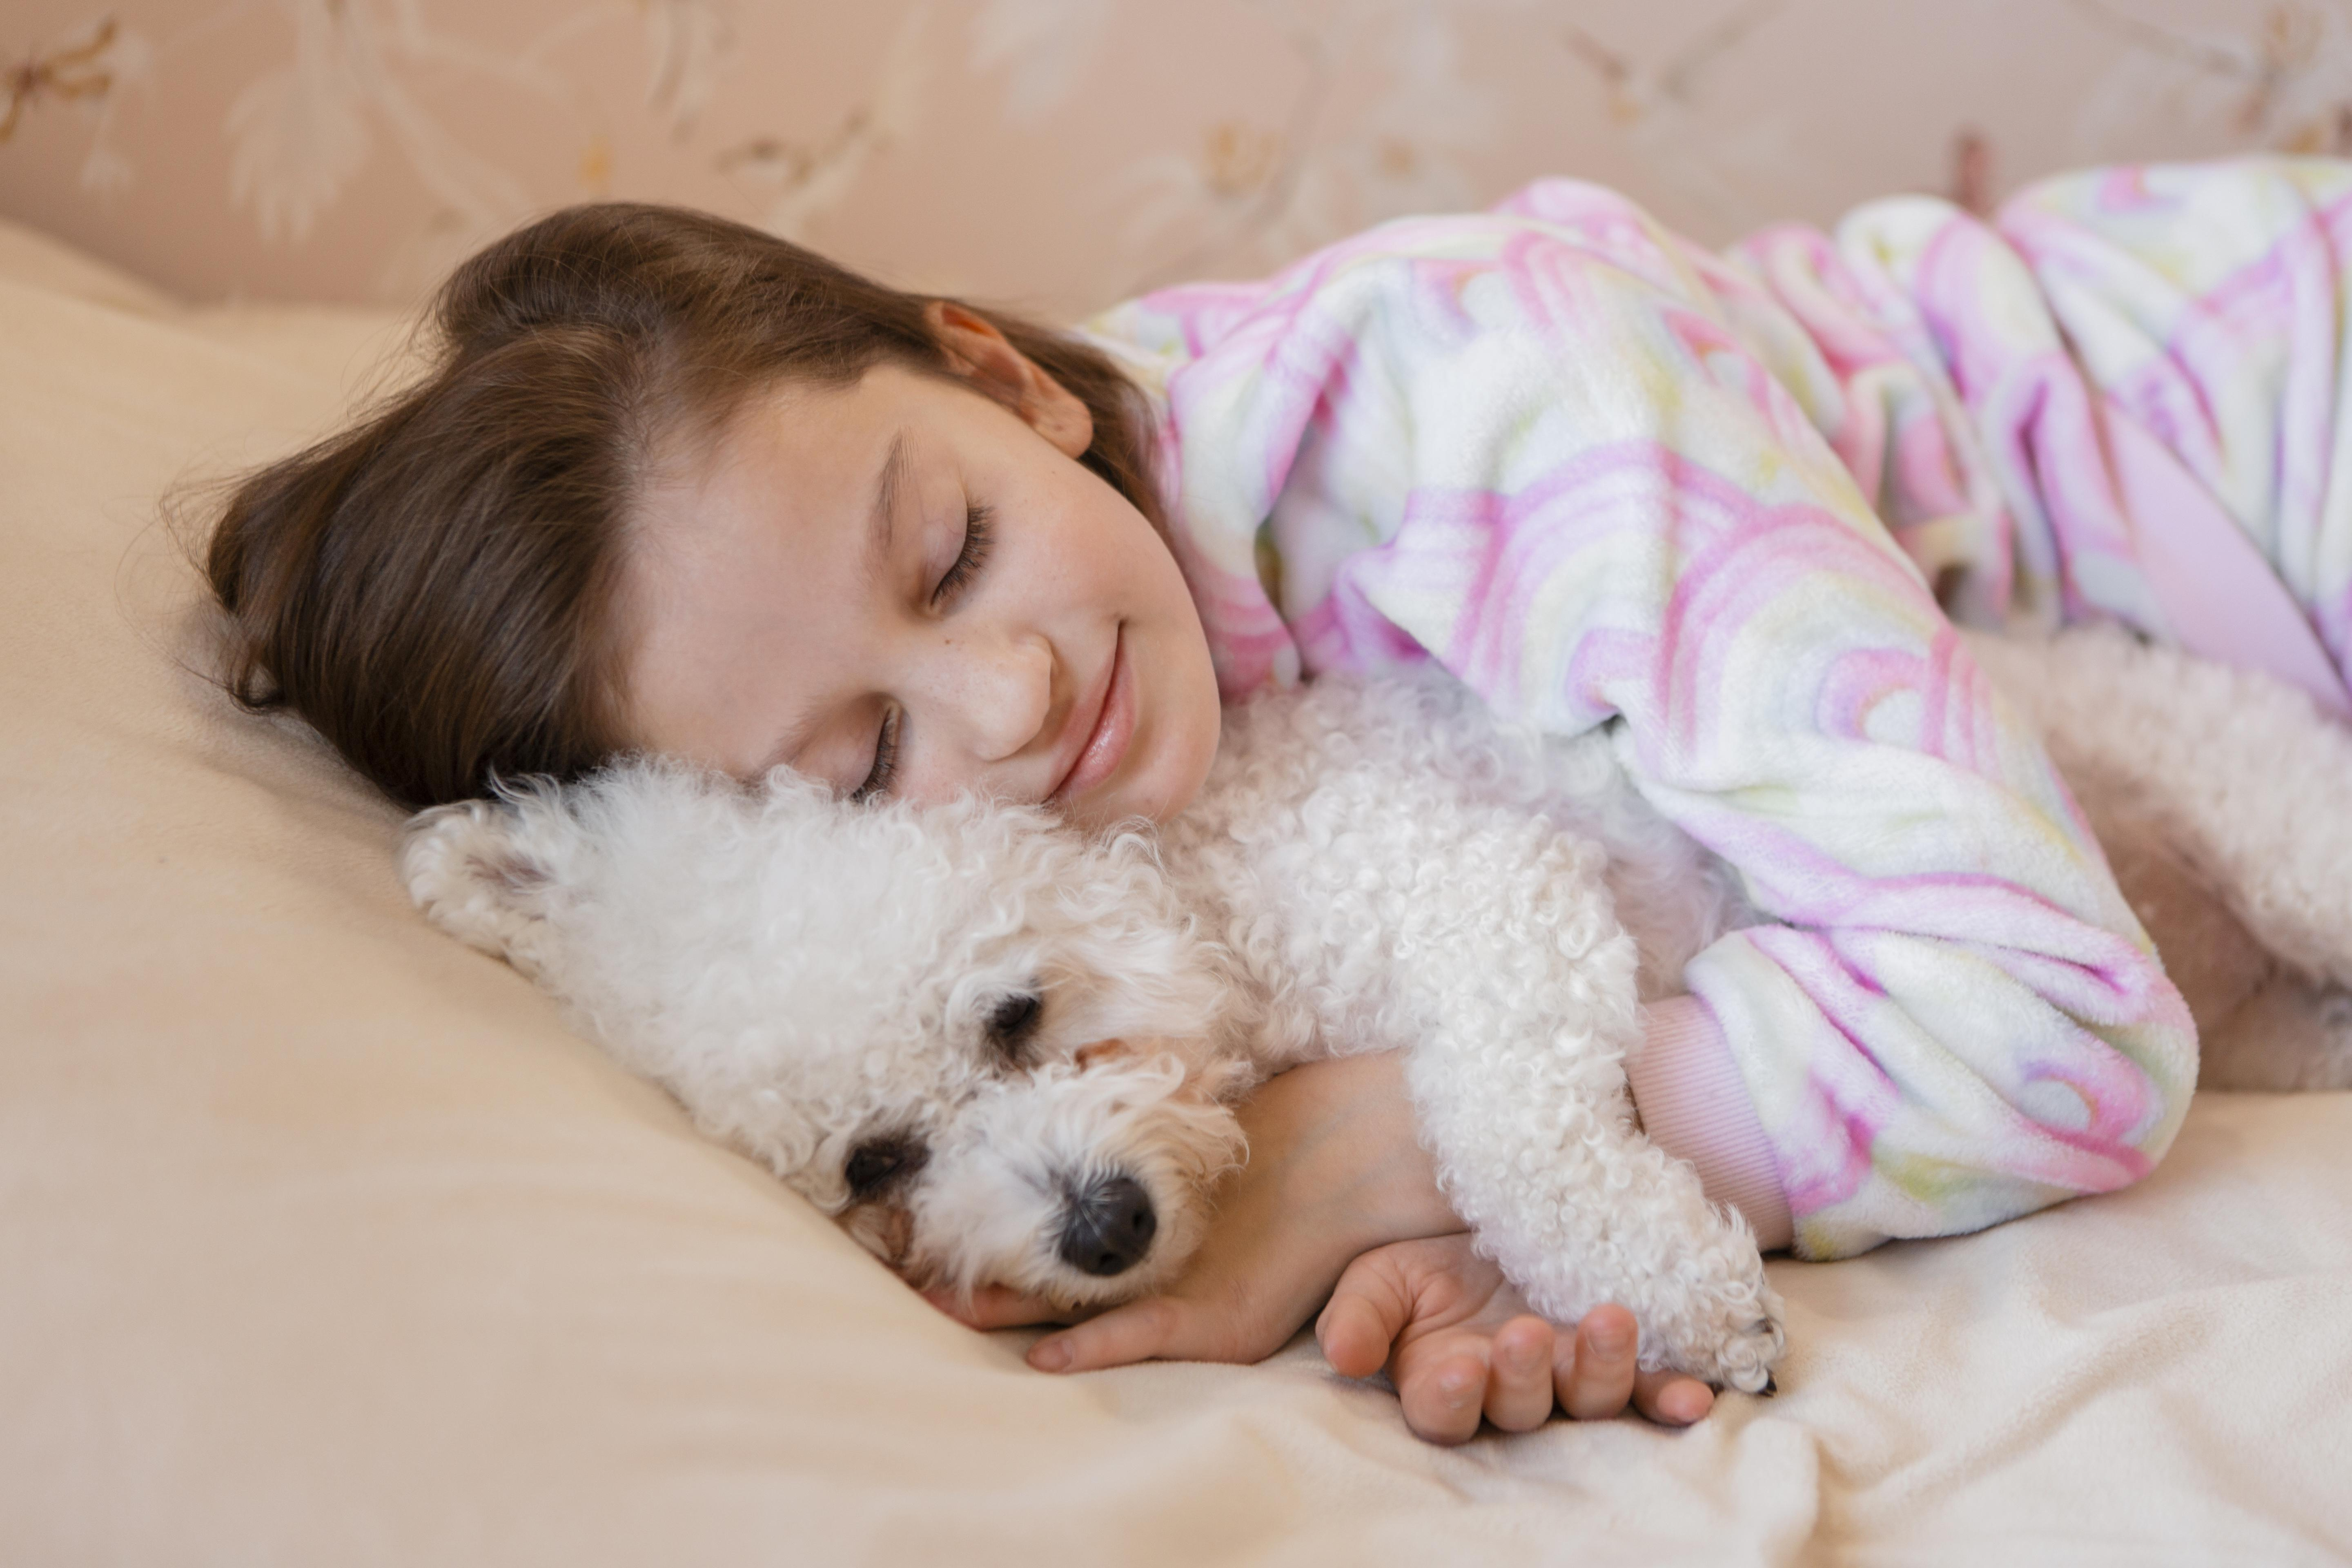 girl-hugging-her-dog-bed-while-sleepin